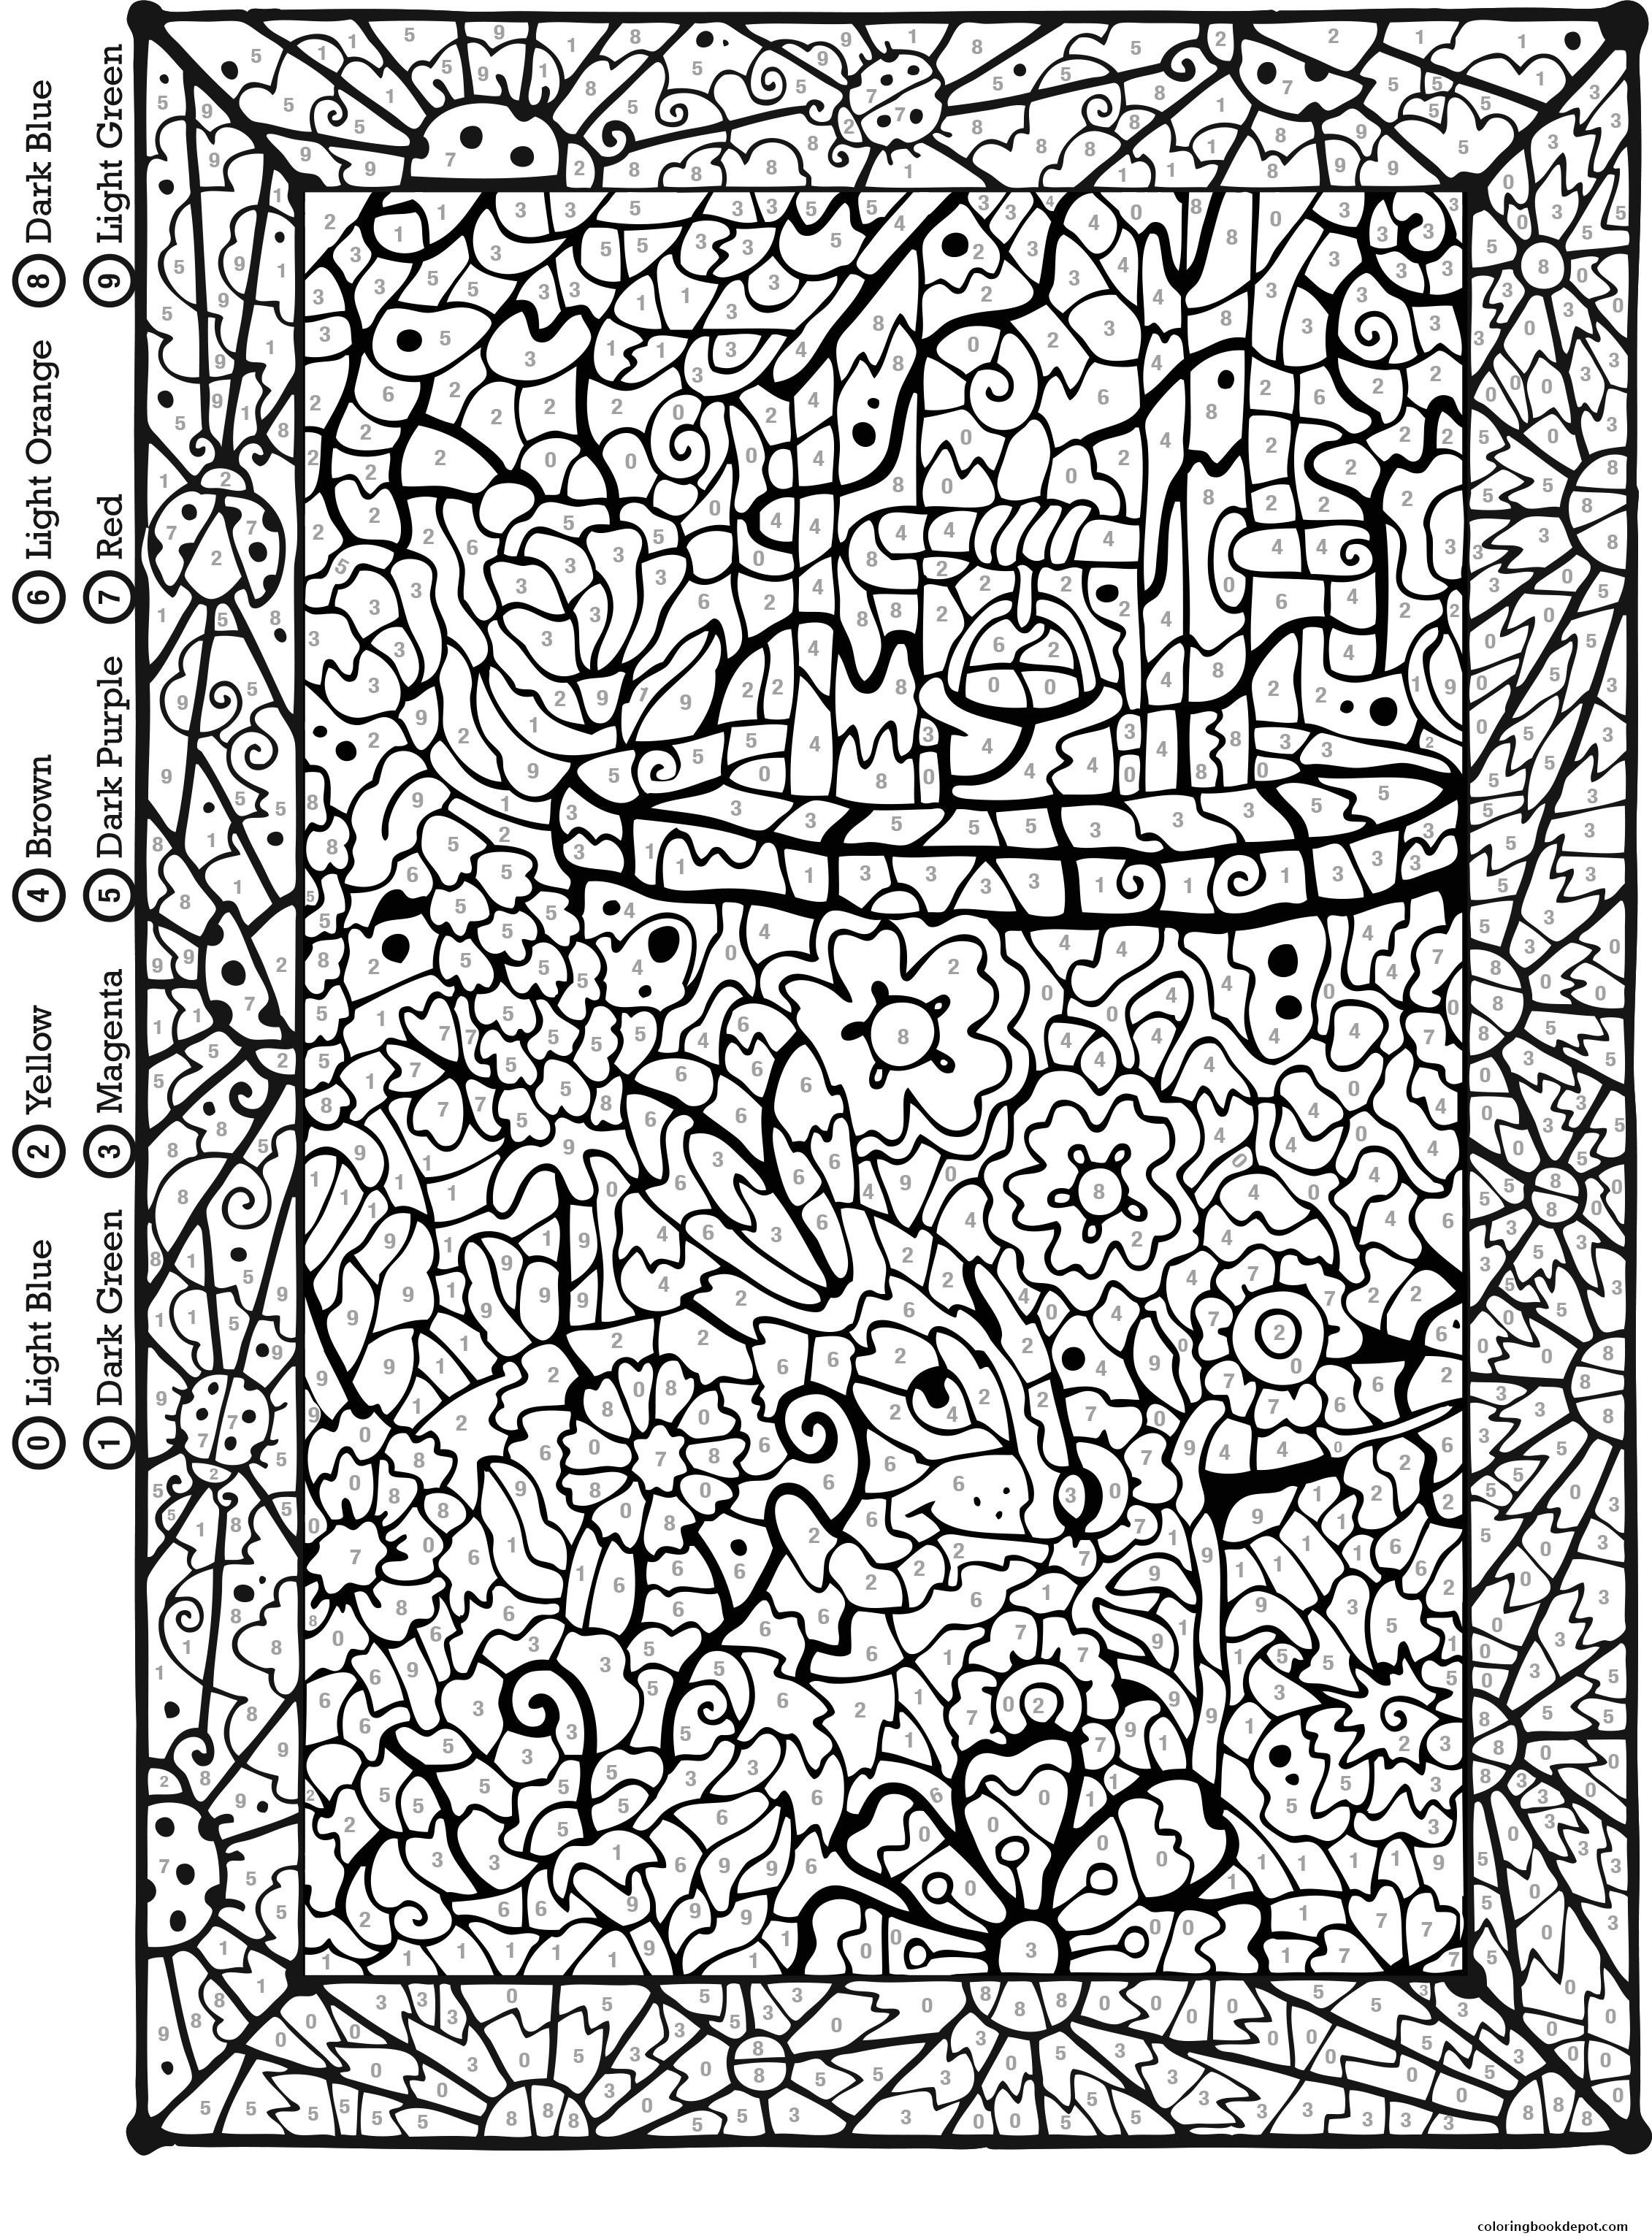 Difficult Color By Number Coloring Pages For Adults  free color by number for adults very difficult coloring pages